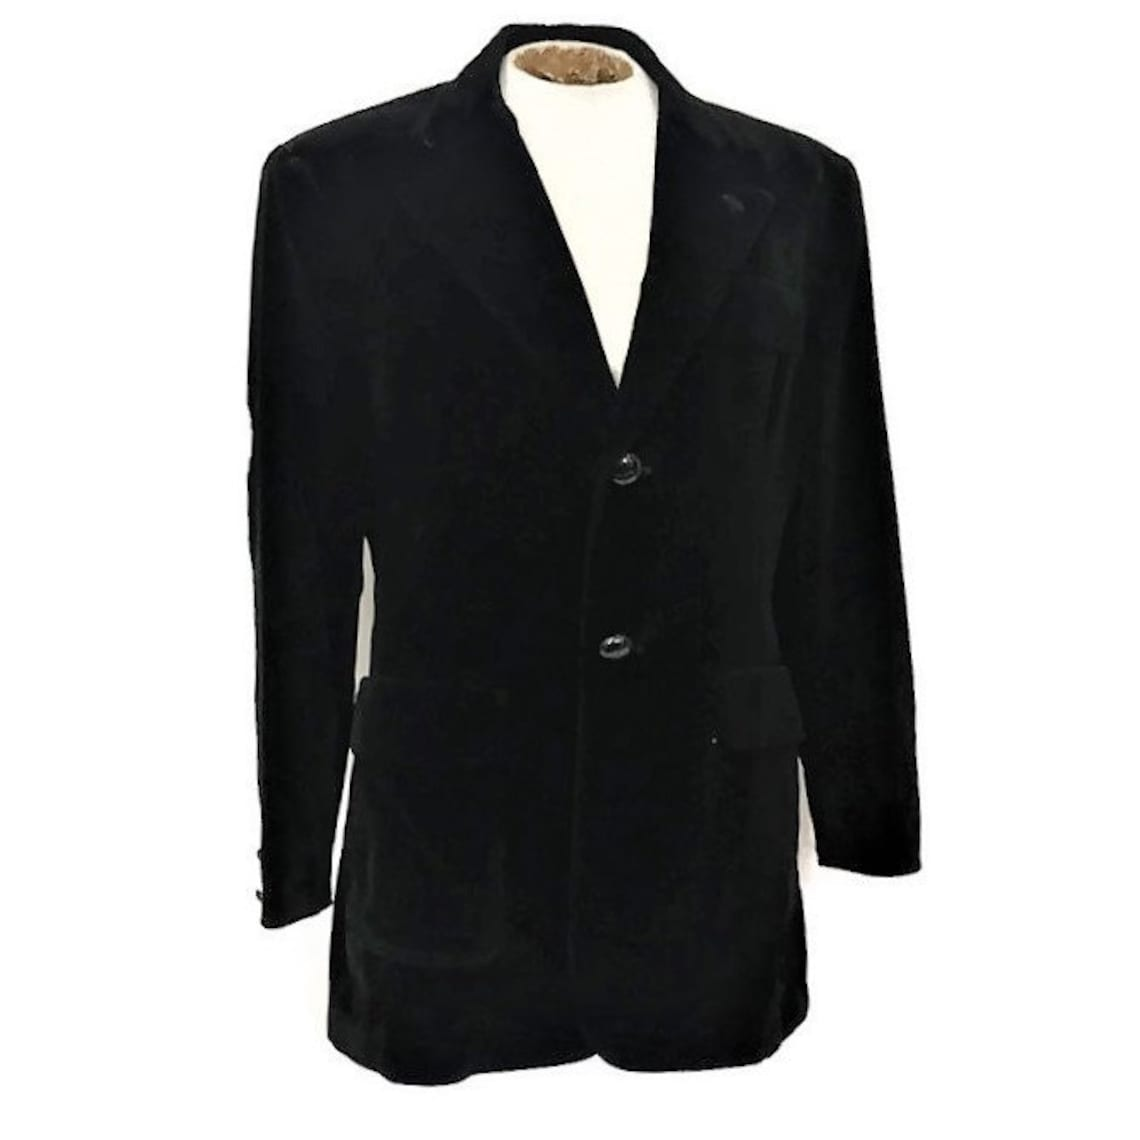 Black Velvet Blazer, Vintage Hollywood Jacket With Wood Buttons, Elbow Patches And Fitted Waist Back Belt